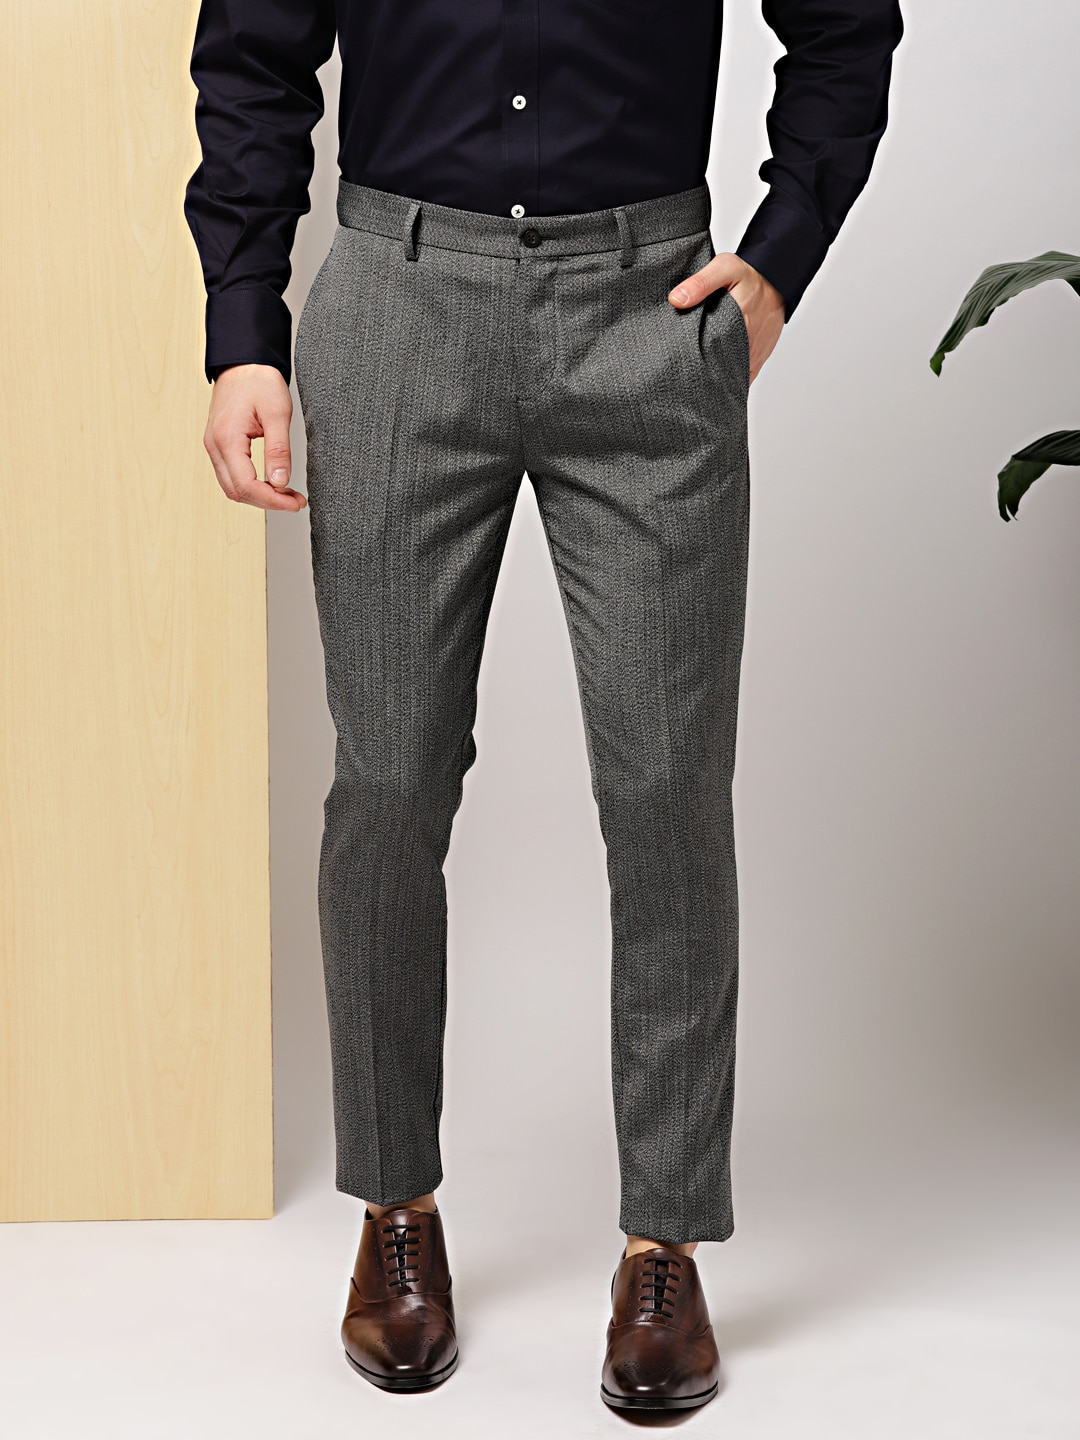 04ab859f0f1 Invictus Formal Trousers - Buy Invictus Formal Trousers online in India